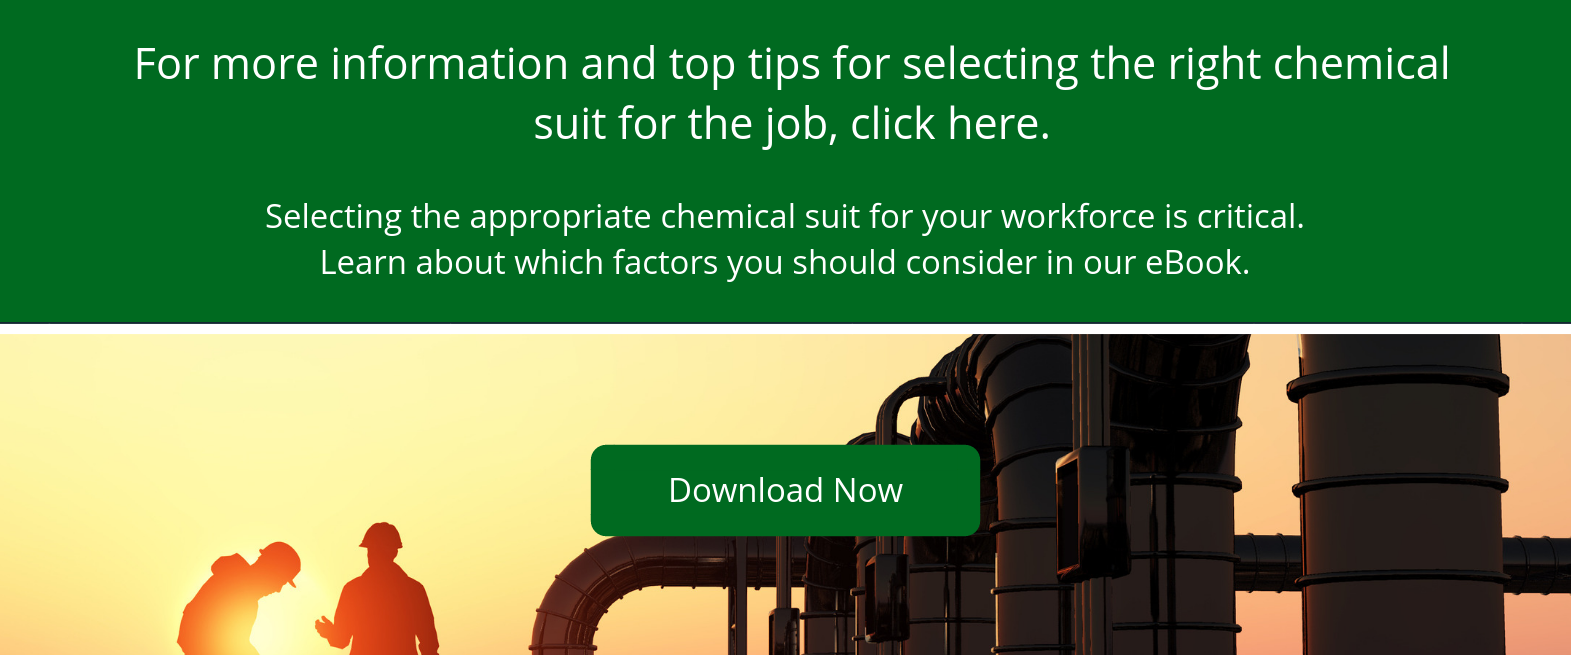 How can activity impact chemical personal protective equipment